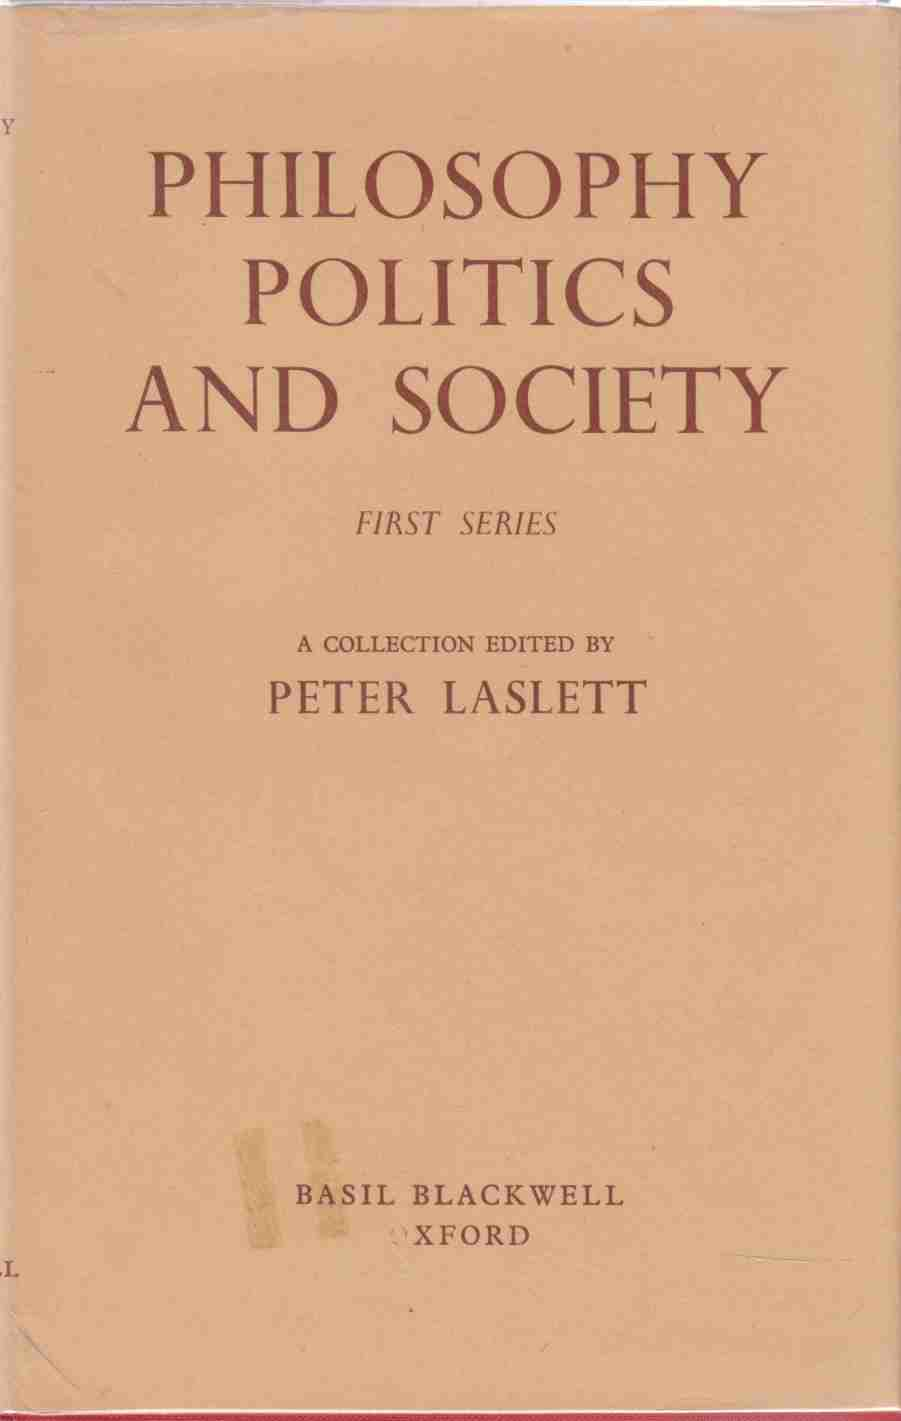 Image for Philosophy, Politics and Society First Series